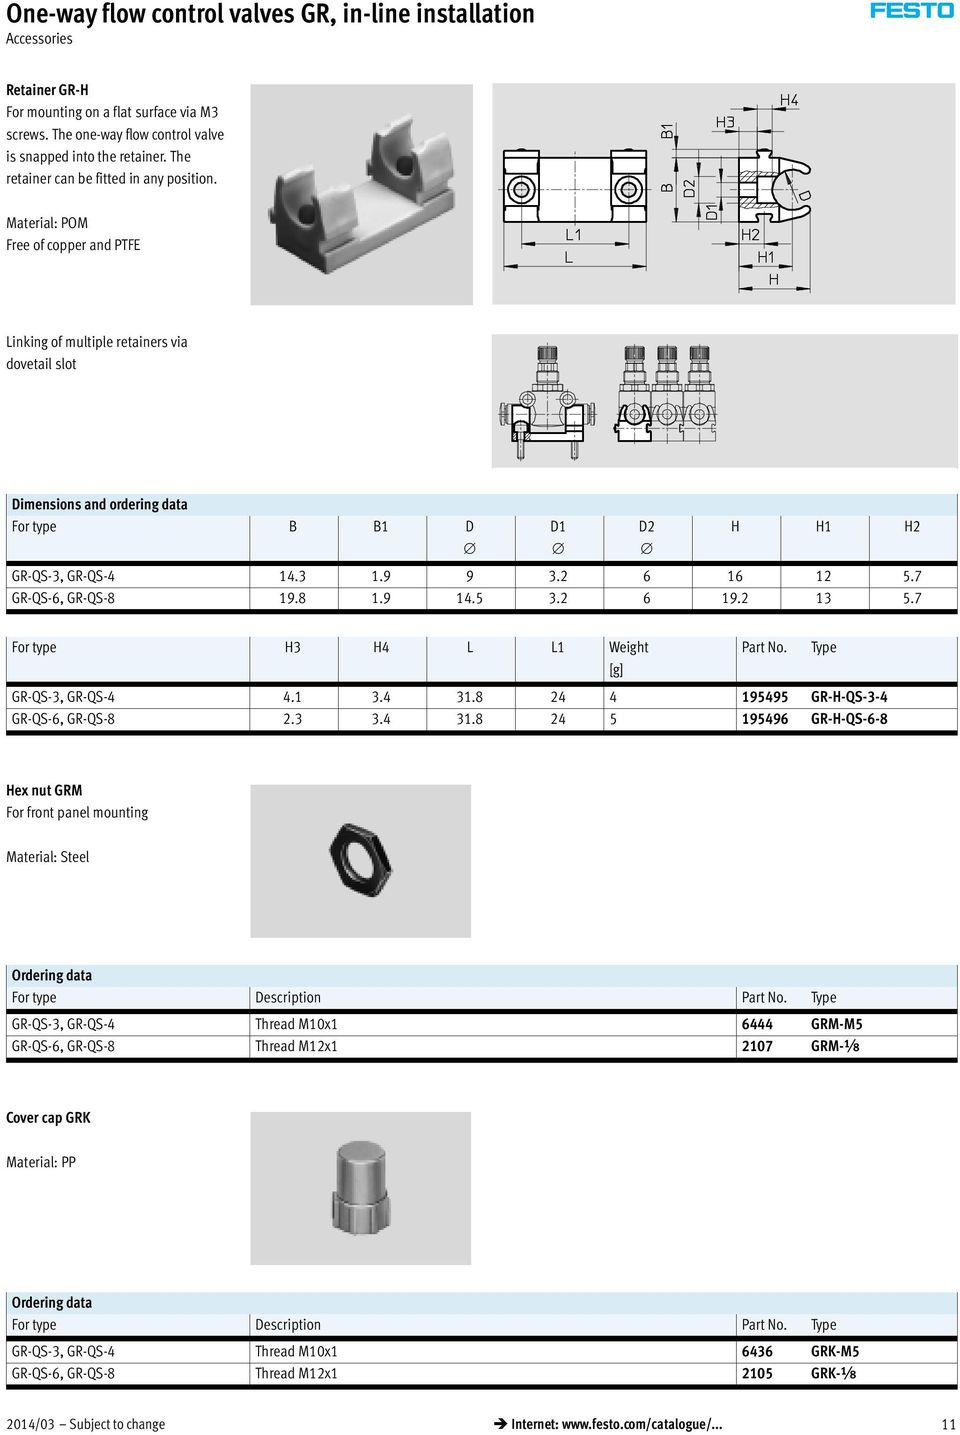 9 9 3.2 6 16 12 5.7 GR-QS-6, GR-QS-8 19.8 1.9 14.5 3.2 6 19.2 13 5.7 For type H3 H4 L L1 Weight Part No. Type [g] GR-QS-3, GR-QS-4 4.1 3.4 31.